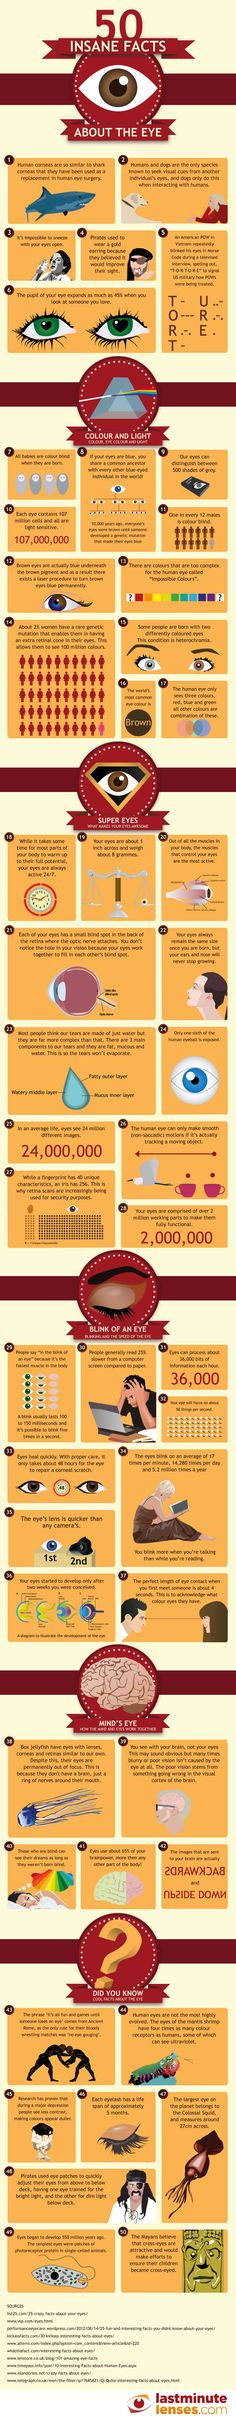 50 insane facts about the eye- though, Im not sure how true #17 is because yellow, red, and blue cannot be made any other color.